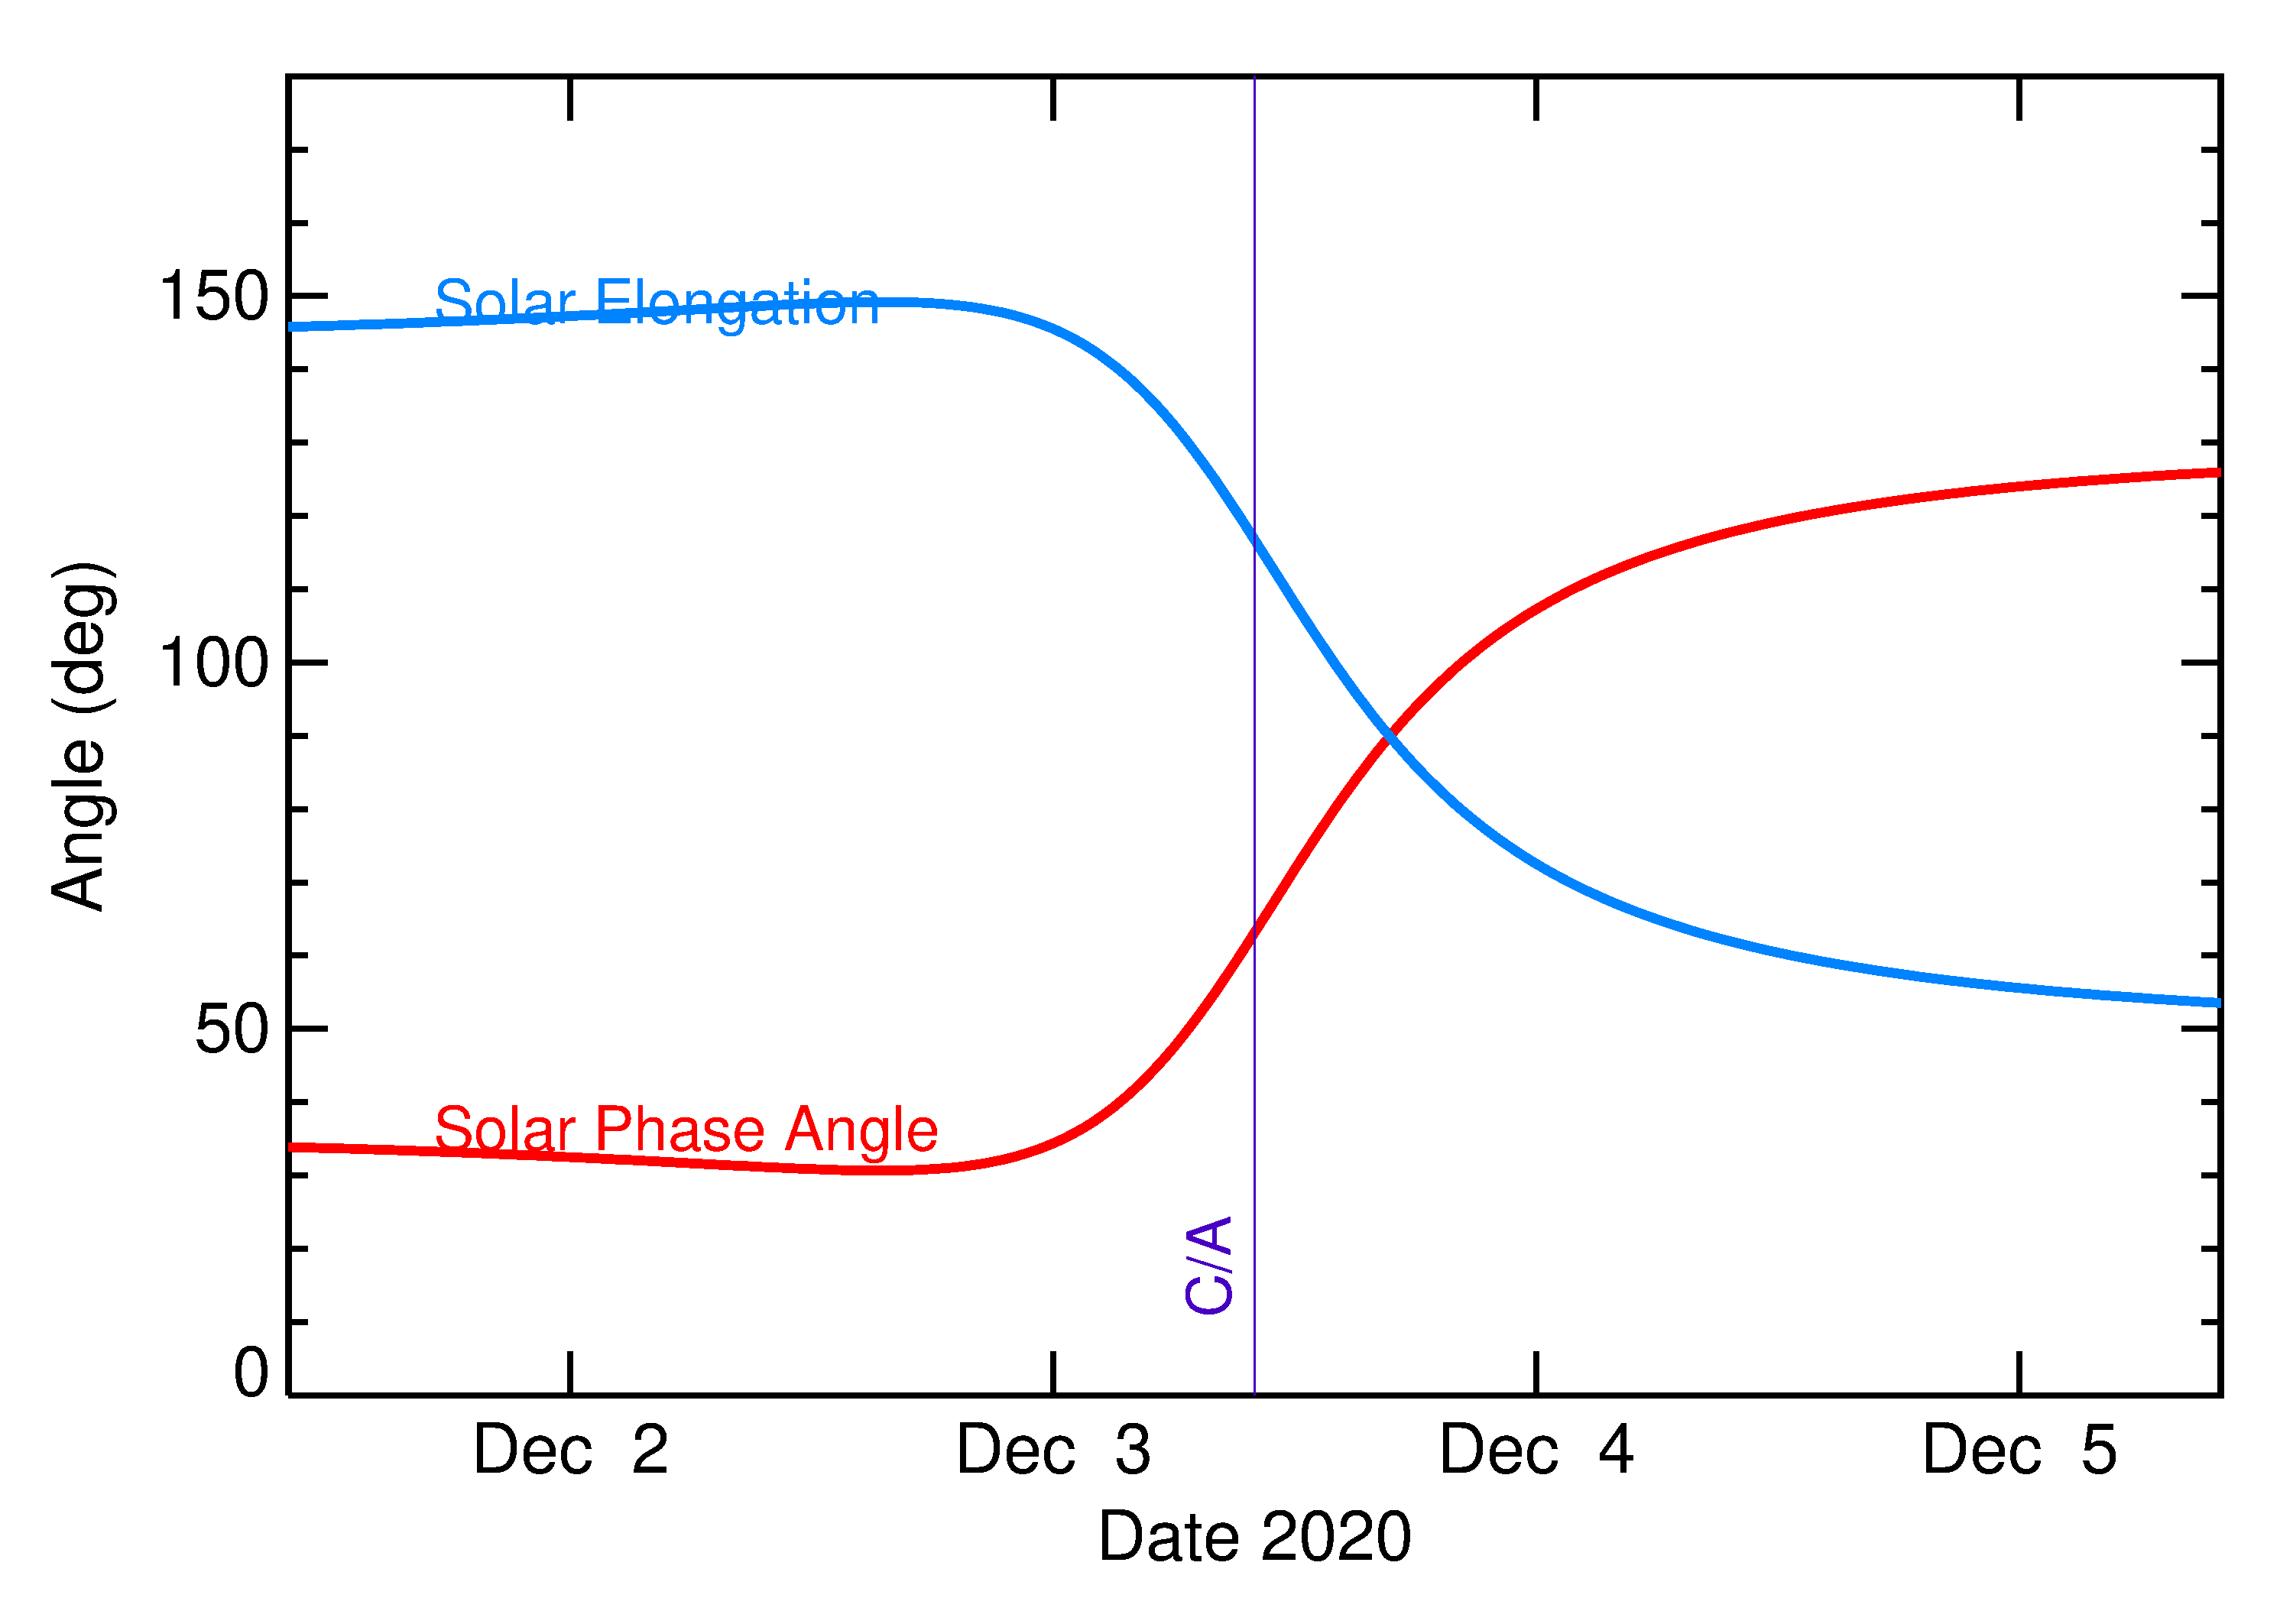 Solar Elongation and Solar Phase Angle of 2020 VZ6 in the days around closest approach